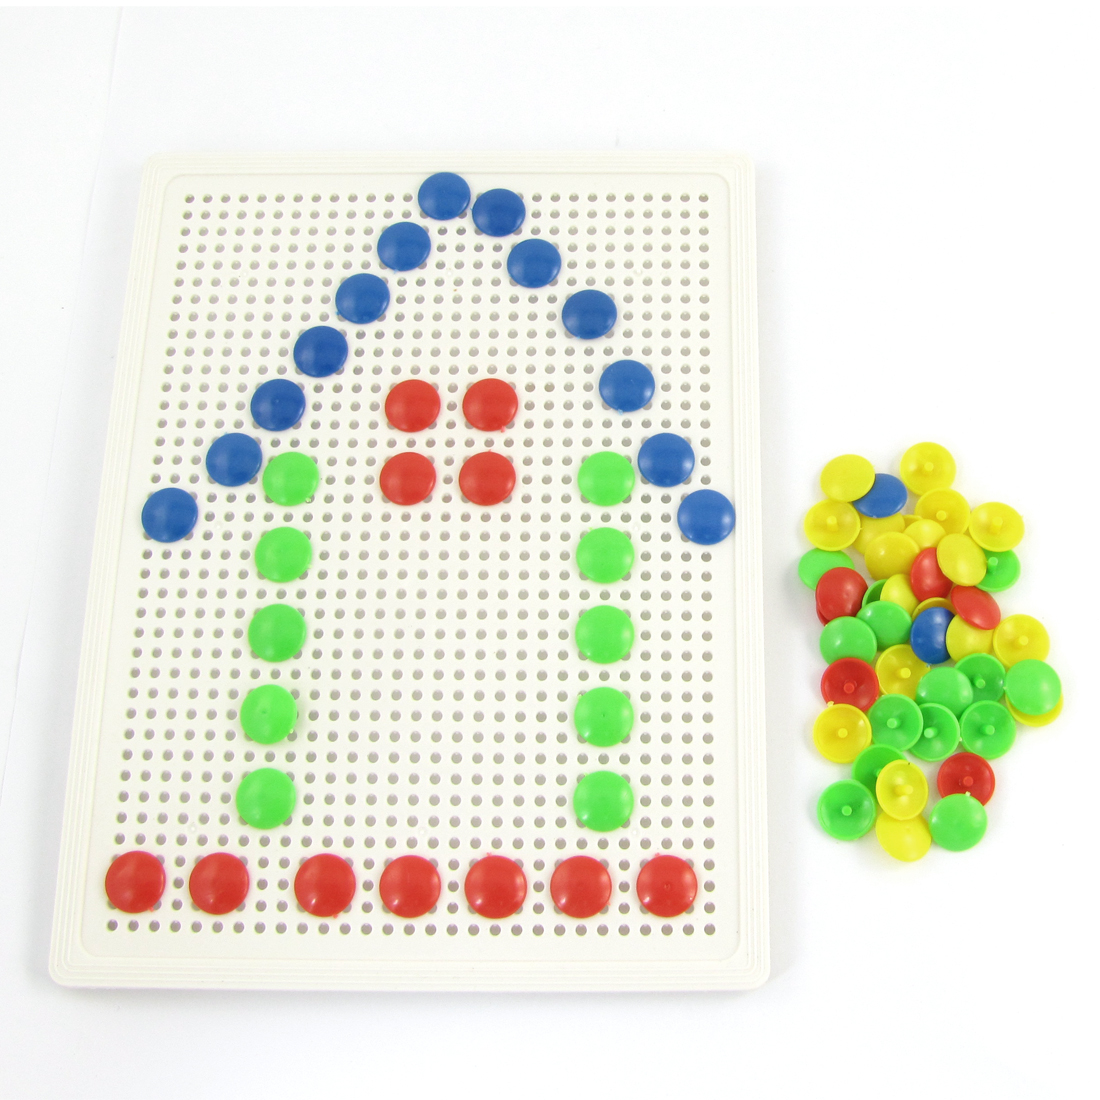 Kids White Board Composite Picture 69 Nail Creativity Puzzle Toy Set